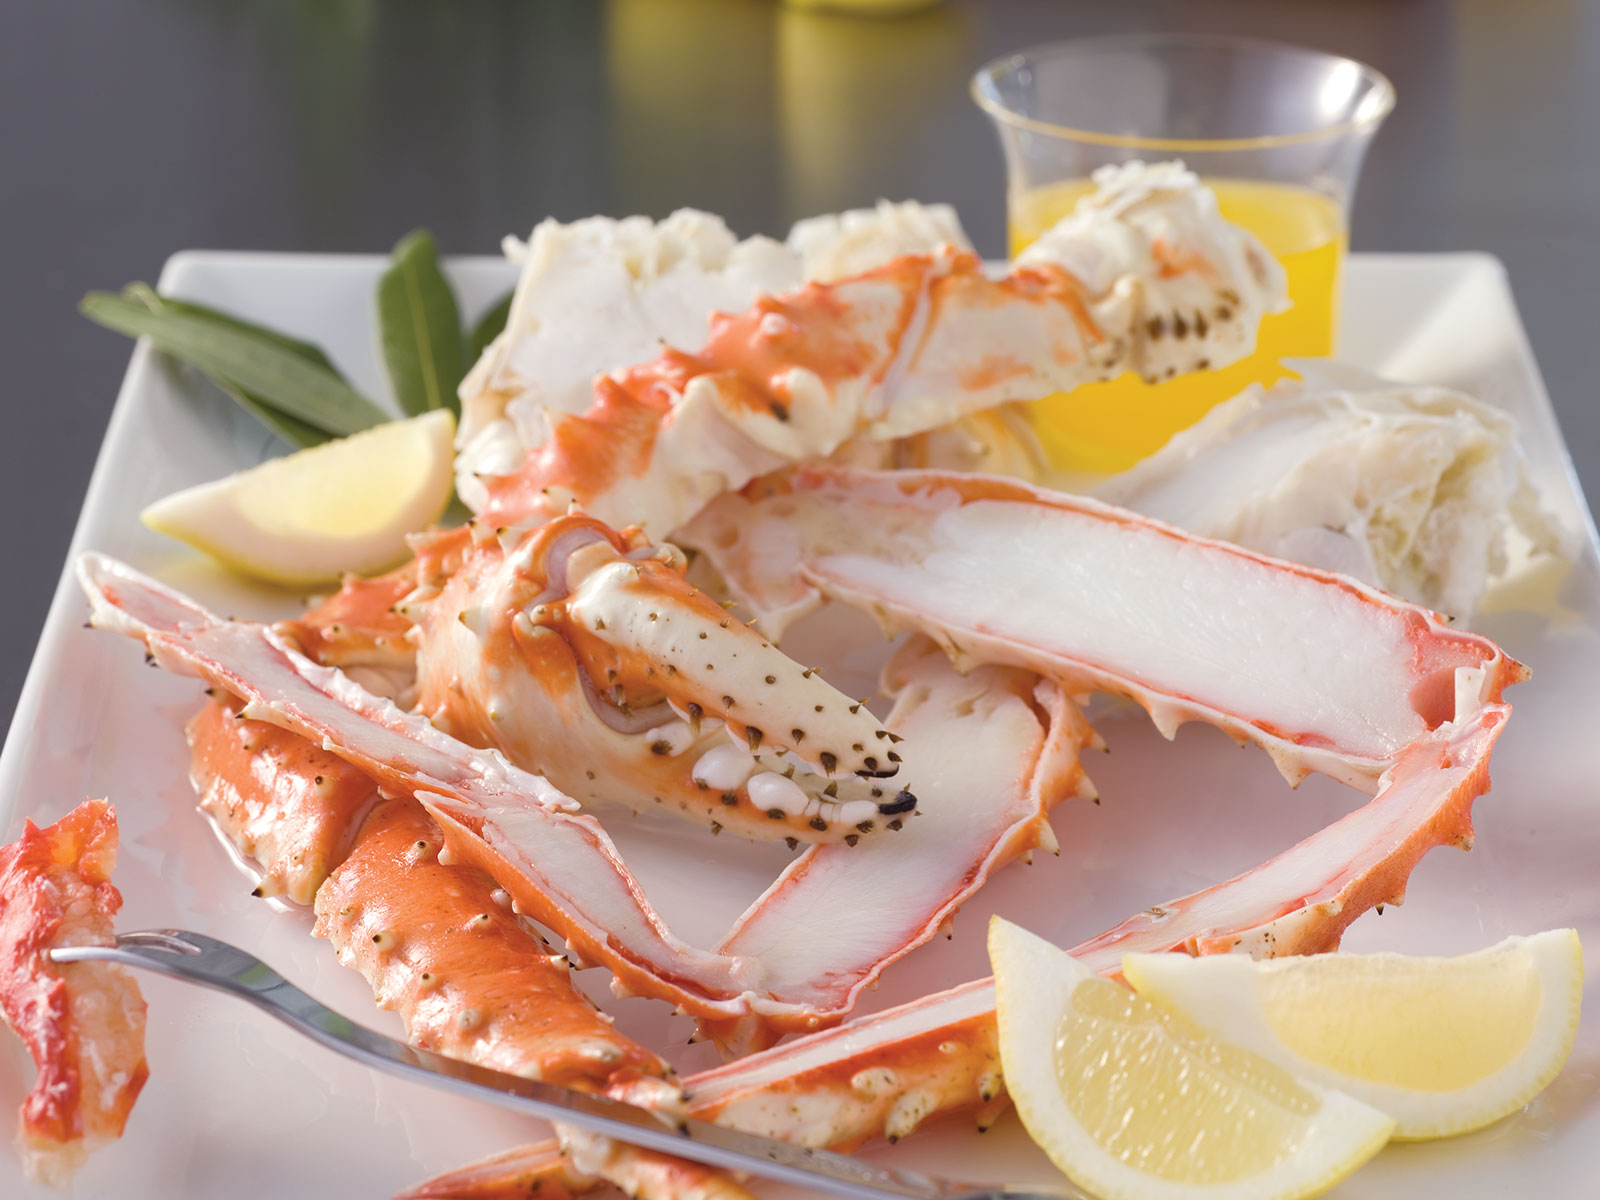 Red King Crab Legs & Claws 14-17 Count Splits (1/10 lb) 491829